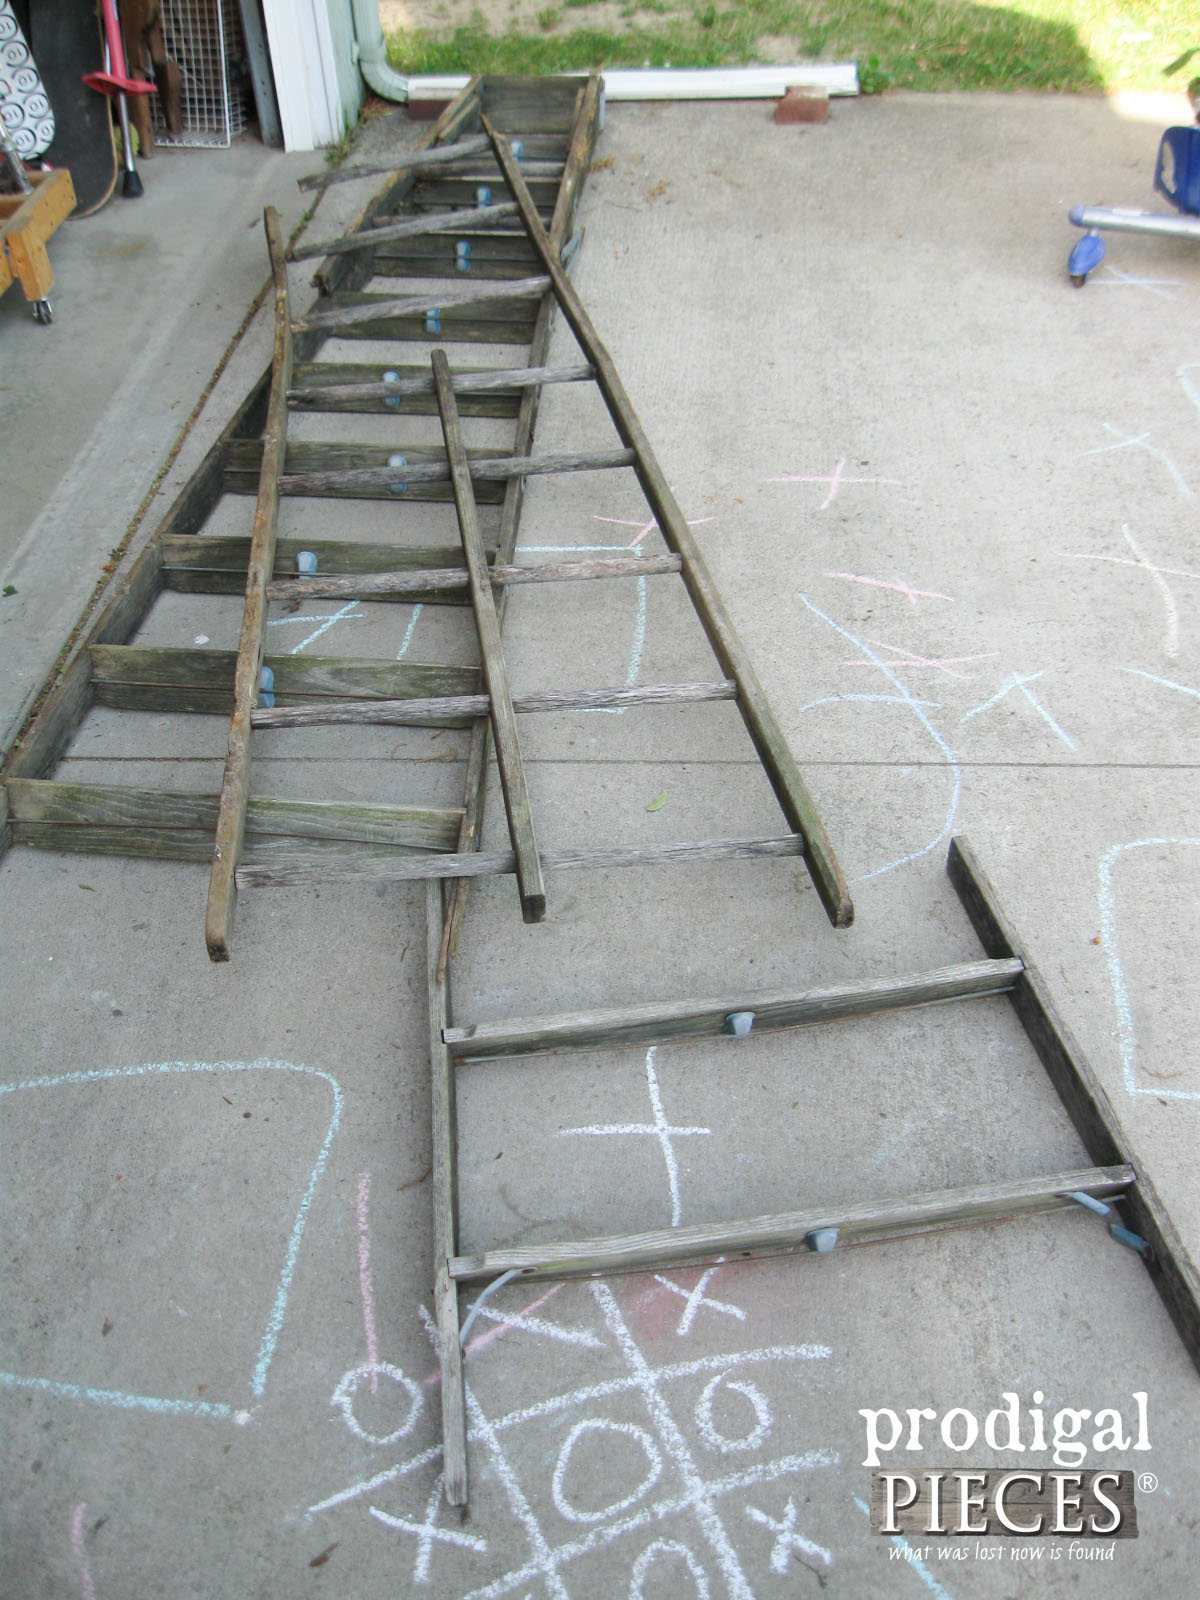 Old Wooden Ladder Salvaged for Parts   Prodigal Pieces   prodigalpieces.com